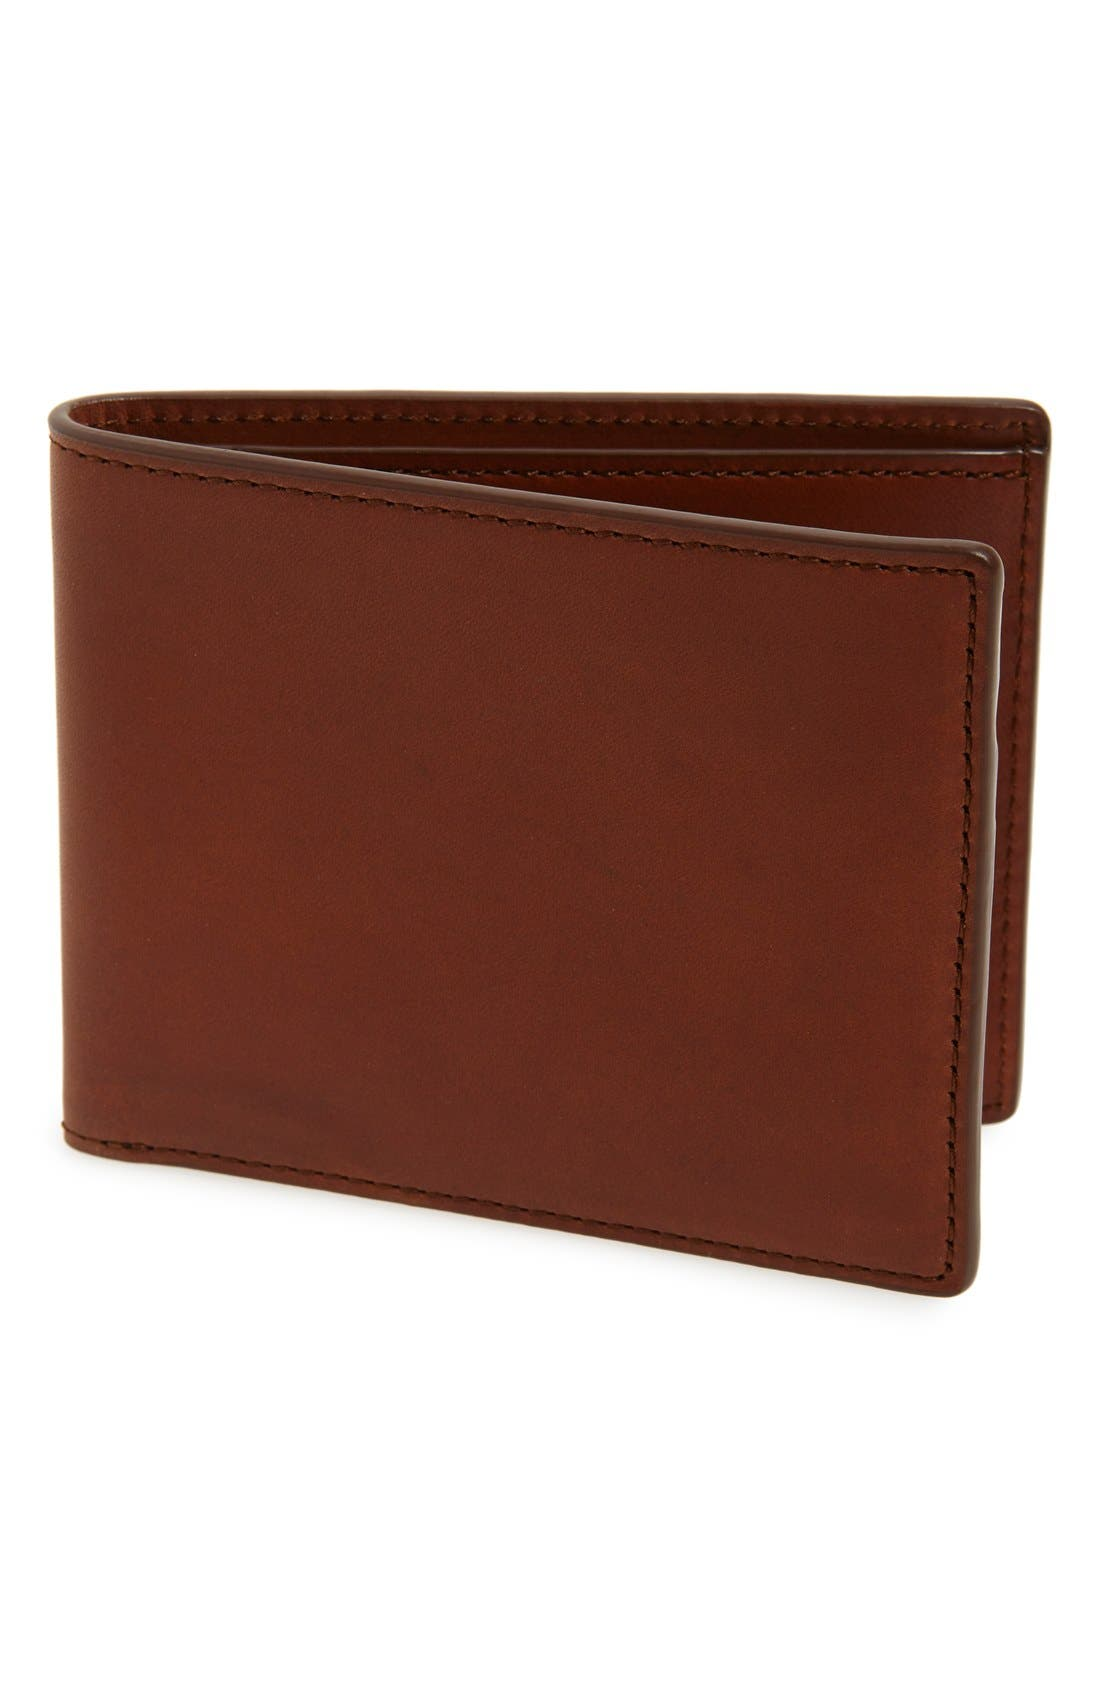 Hampshire Leather Bifold Wallet,                         Main,                         color, Brown